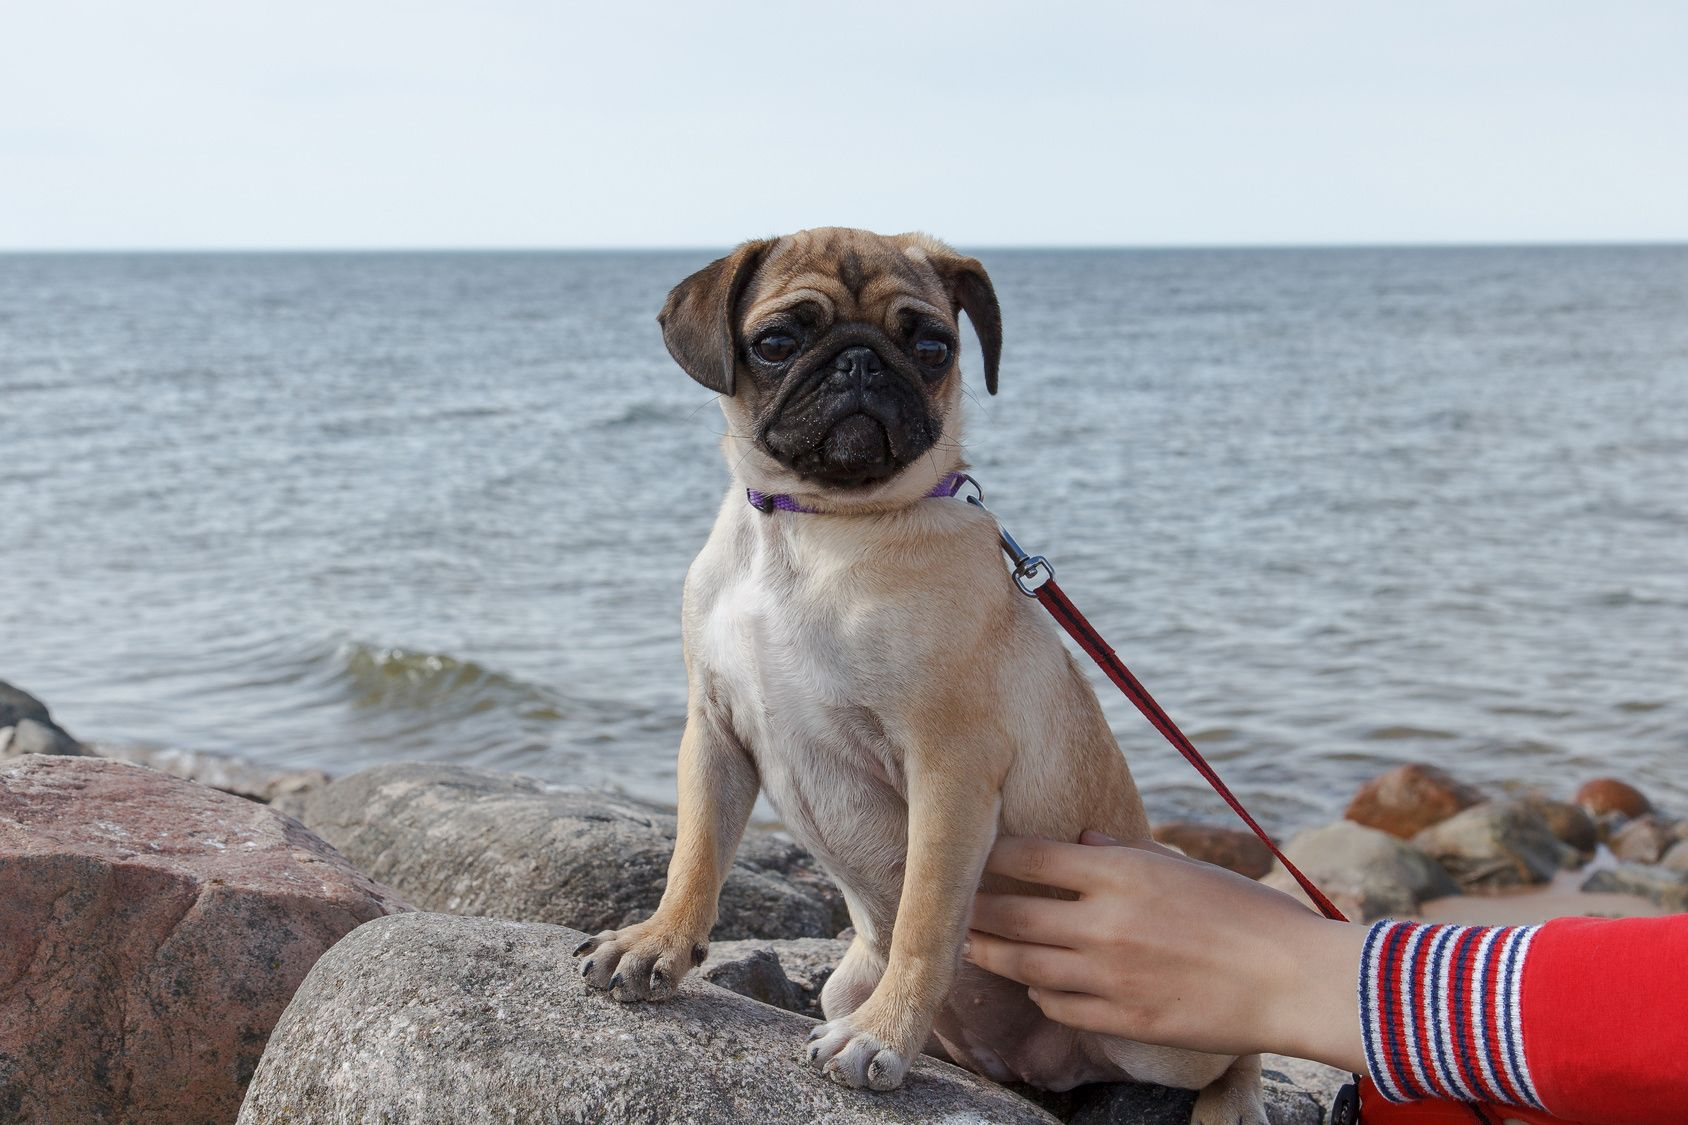 A pug sitting on a rock by the sea